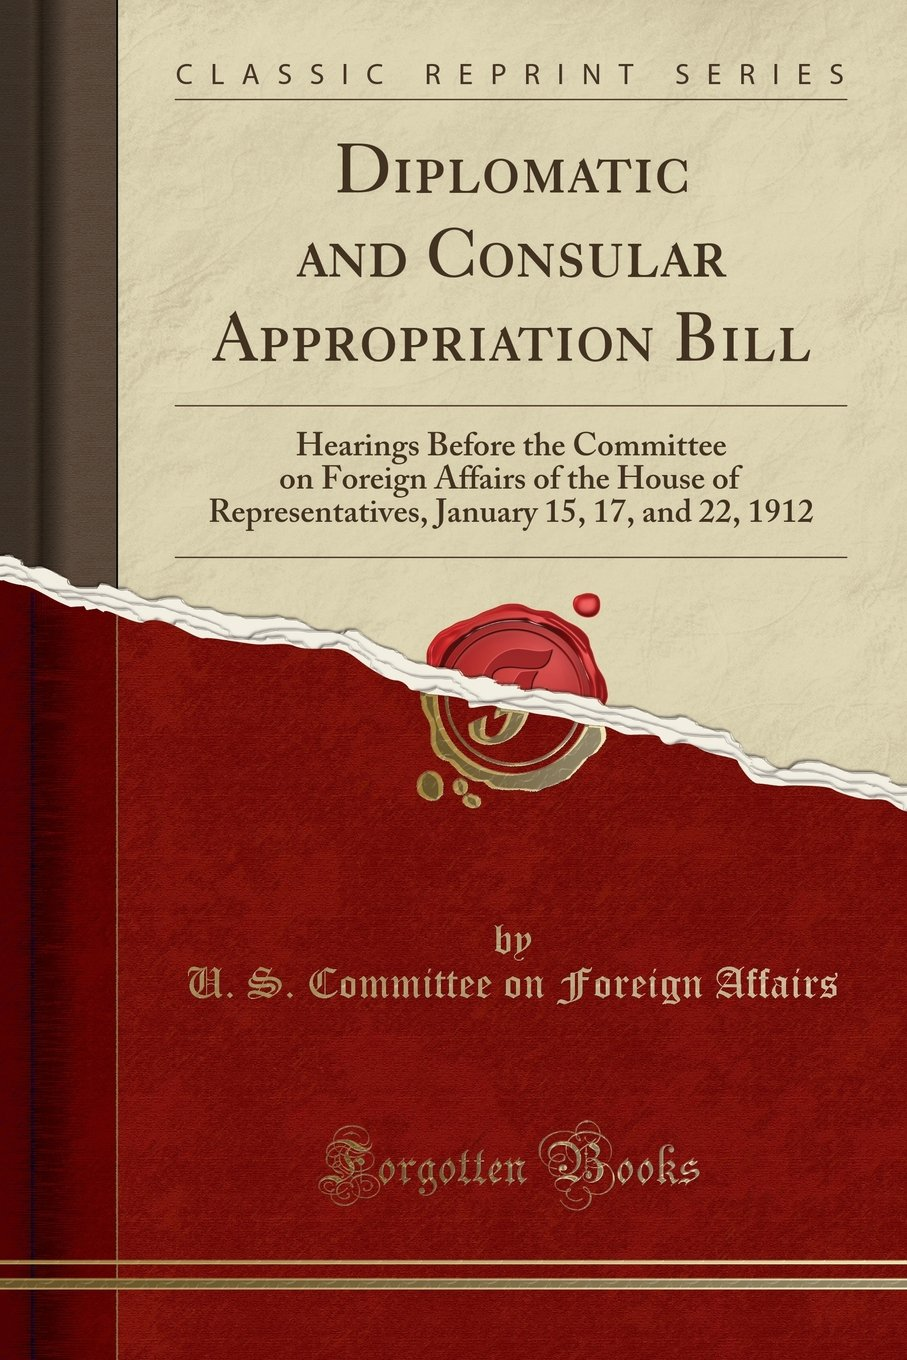 Diplomatic and Consular Appropriation Bill: Hearings Before the Committee on Foreign Affairs of the House of Representatives, January 15, 17, and 22, 1912 (Classic Reprint) ebook